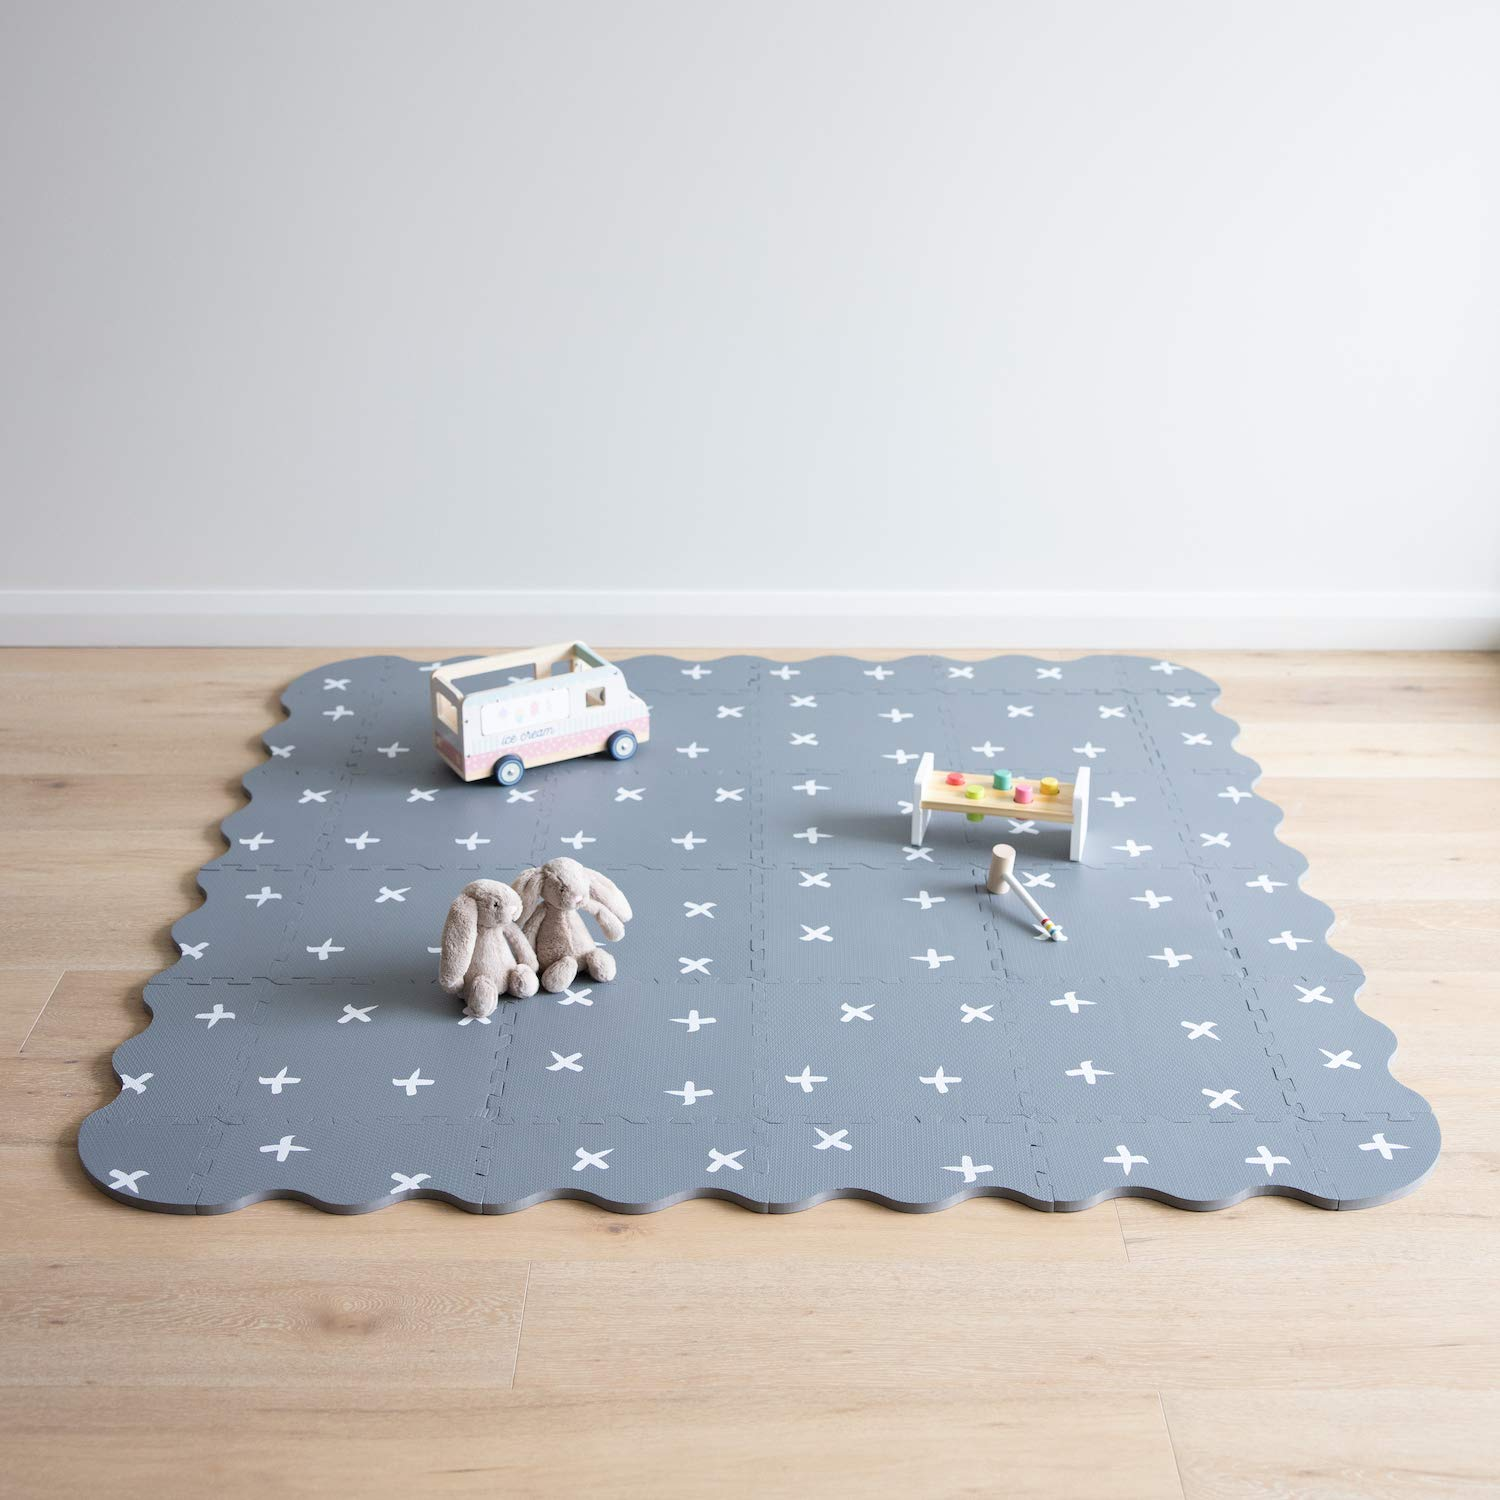 Baby Playmat with Fence by Oliver & Lola (Designer Crisscross Series). 16 Interlocking Foam Floor Tiles Made of Baby-Safe Non-Toxic EVA. Crawling Mat for Nursery and Playpen.